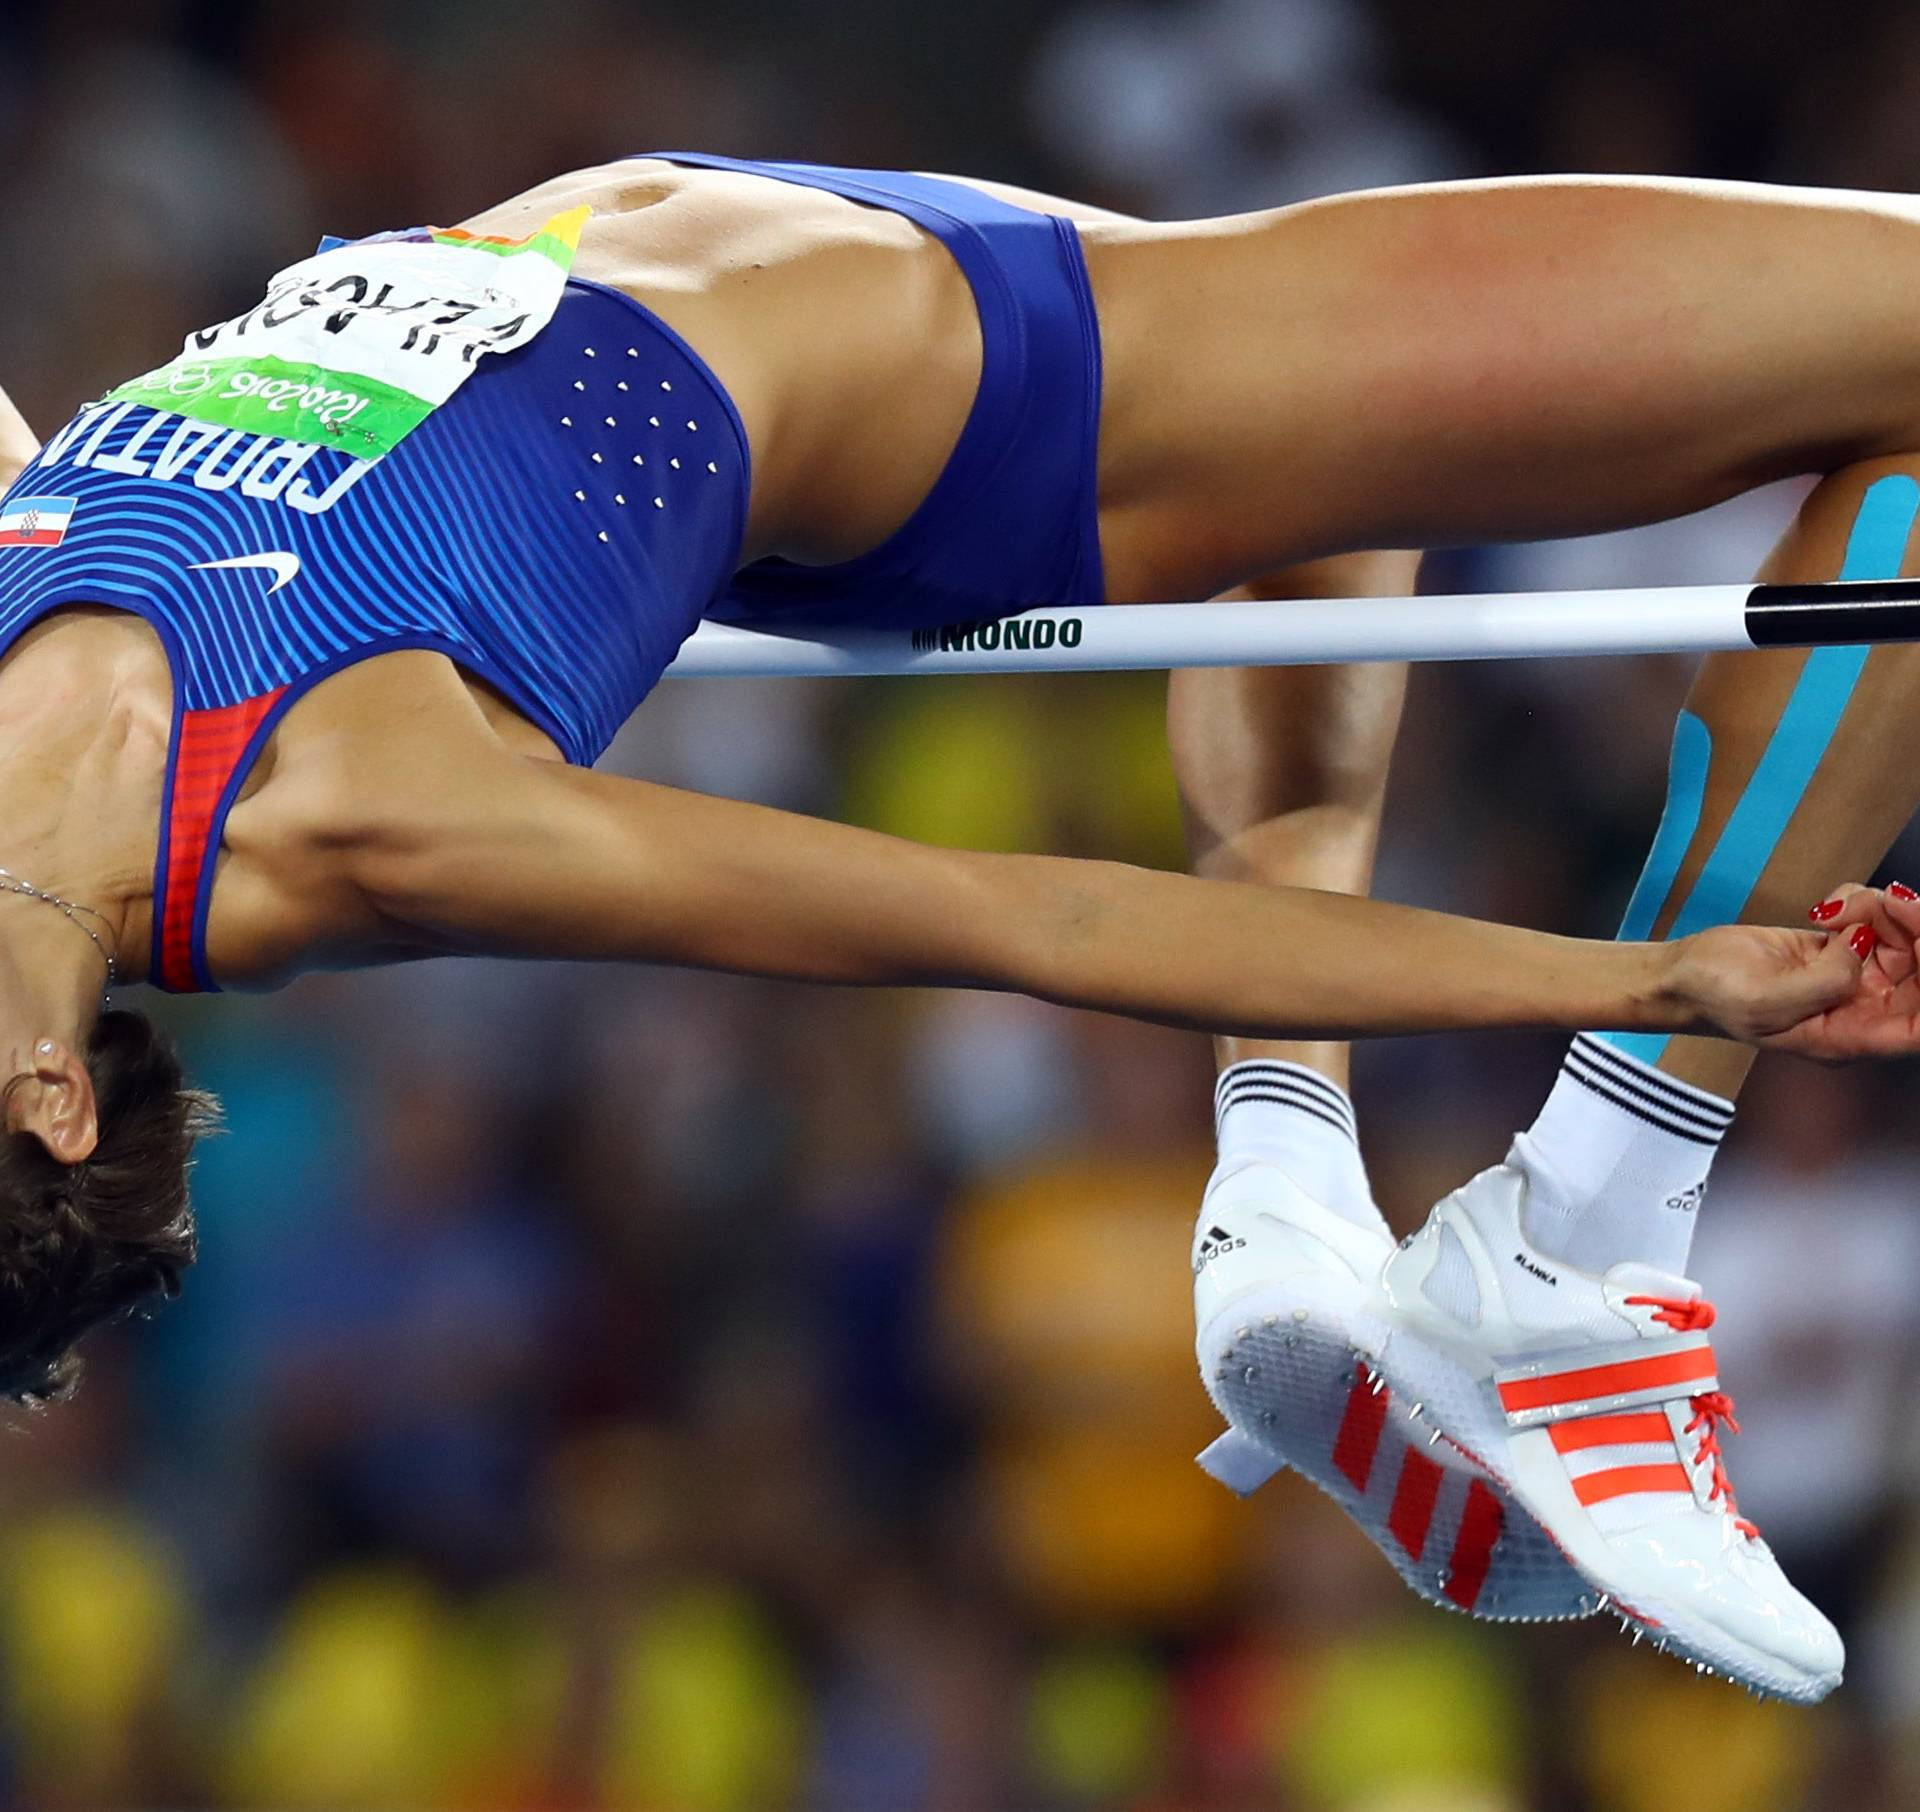 Athletics - Women's High Jump Final